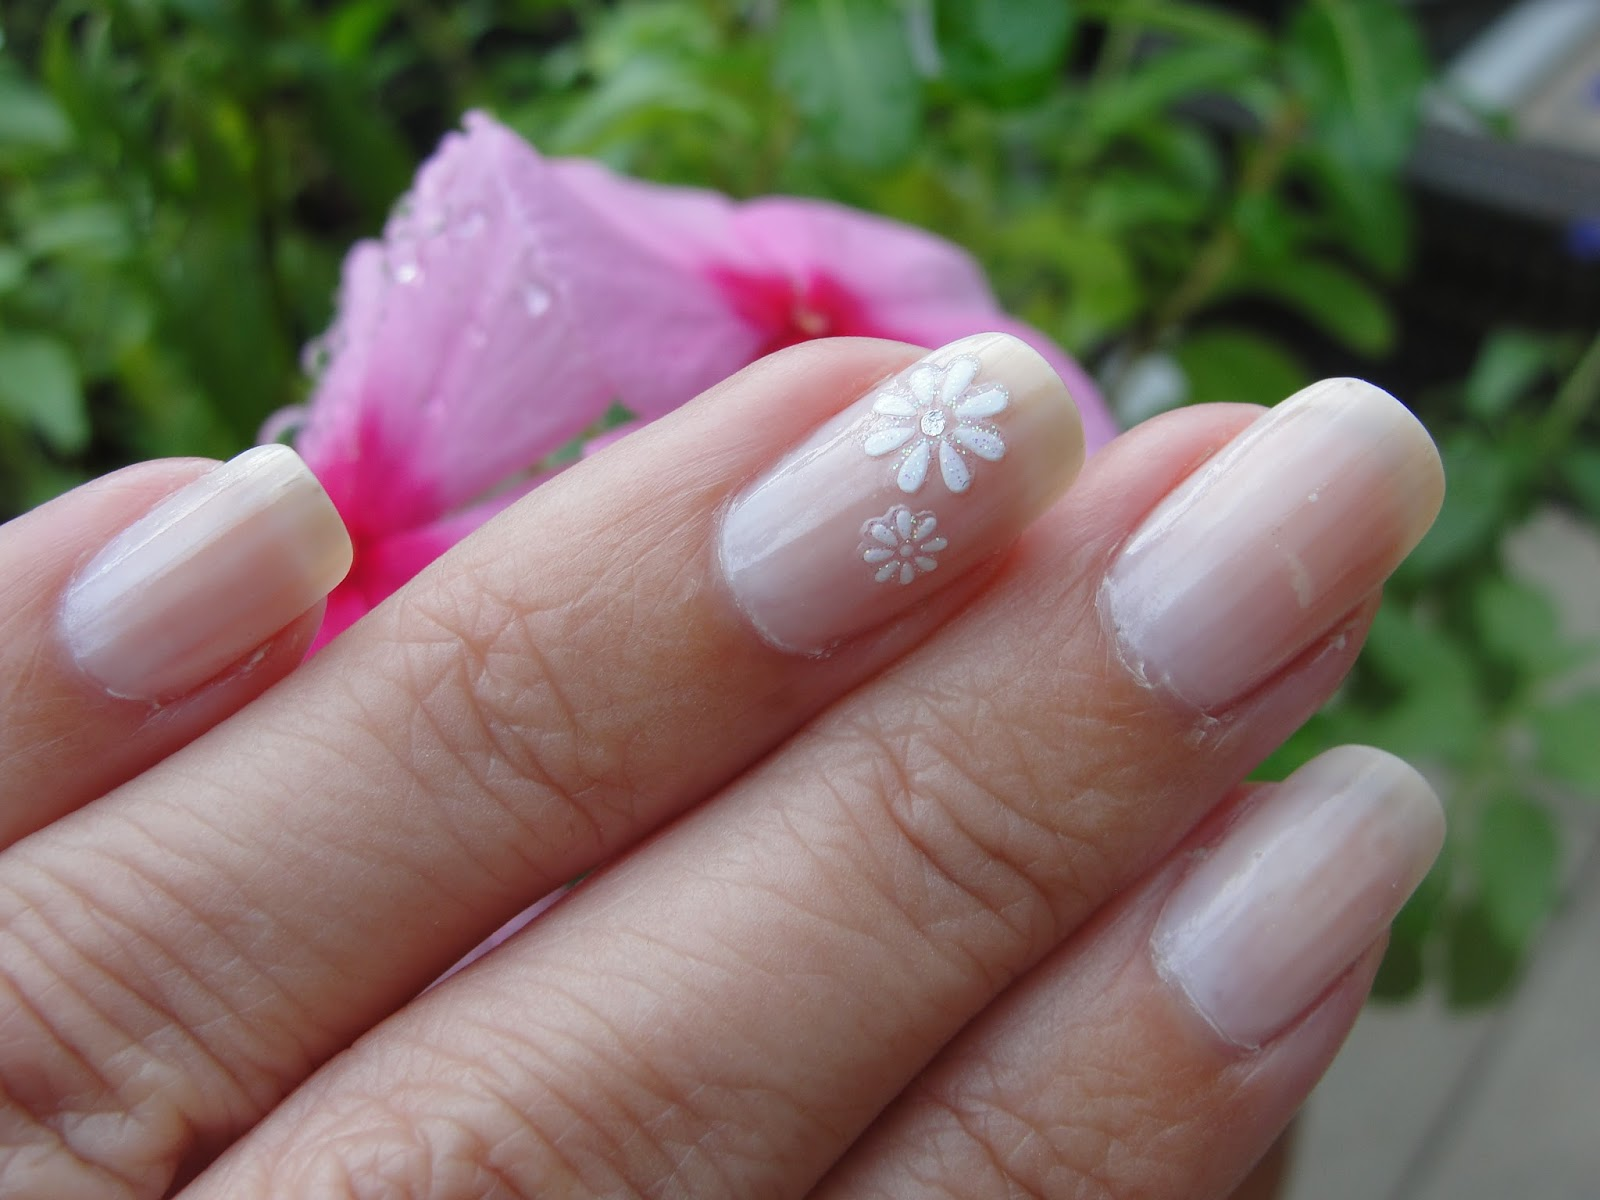 7 tips on how to save money on your wedding wedding nail inspirations s for you all simple enough to do yourself at the convenience of your home just add some flower stickers or some glitter solutioingenieria Image collections